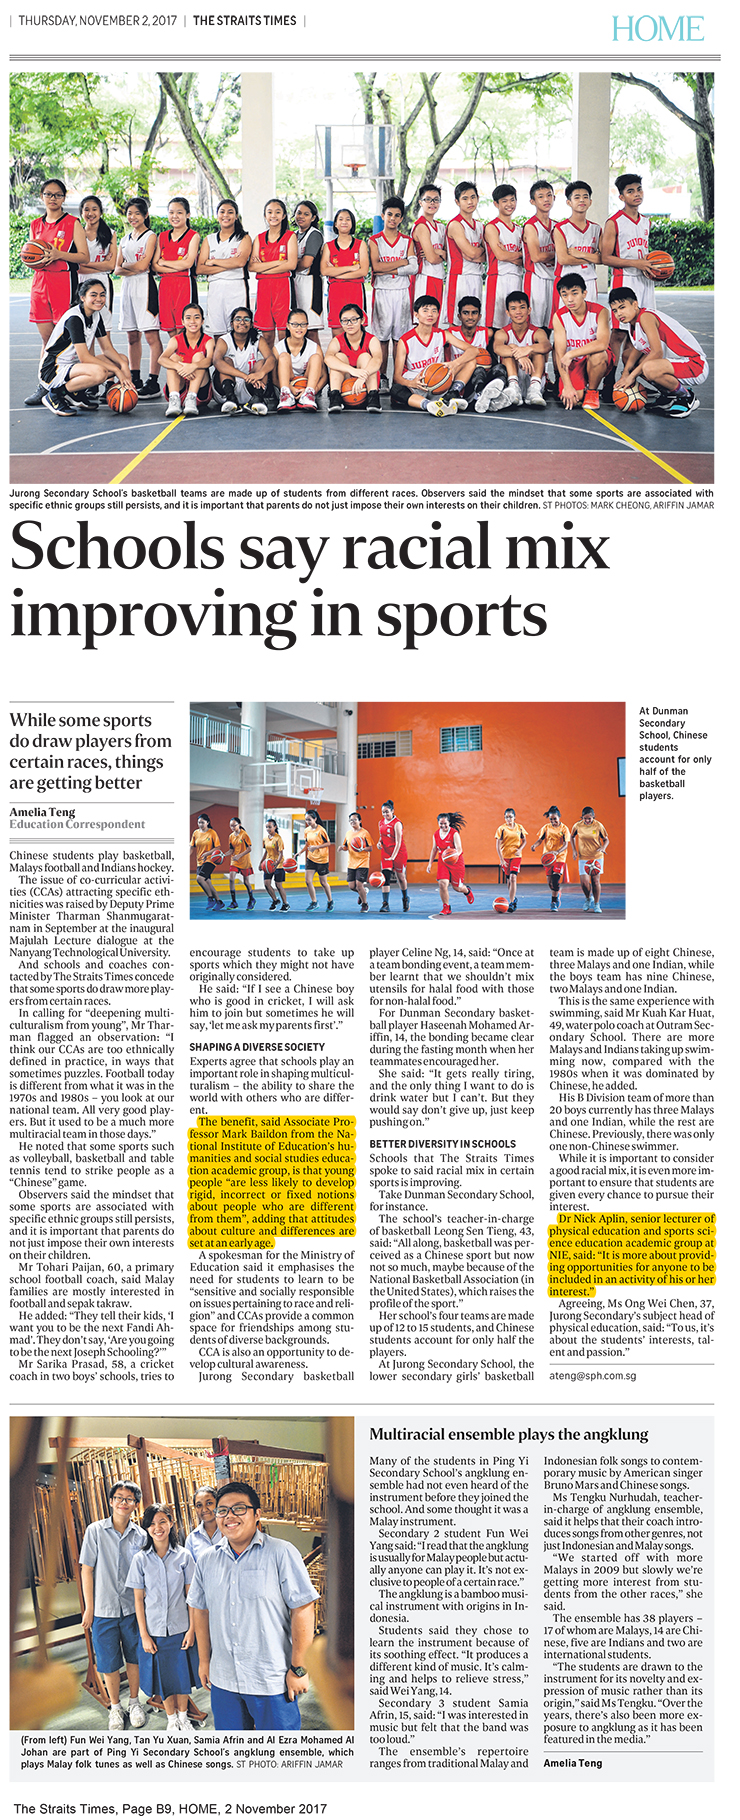 ST-2 Nov 2017_Pg B9, HOME_racial mix improving in sports (740px)